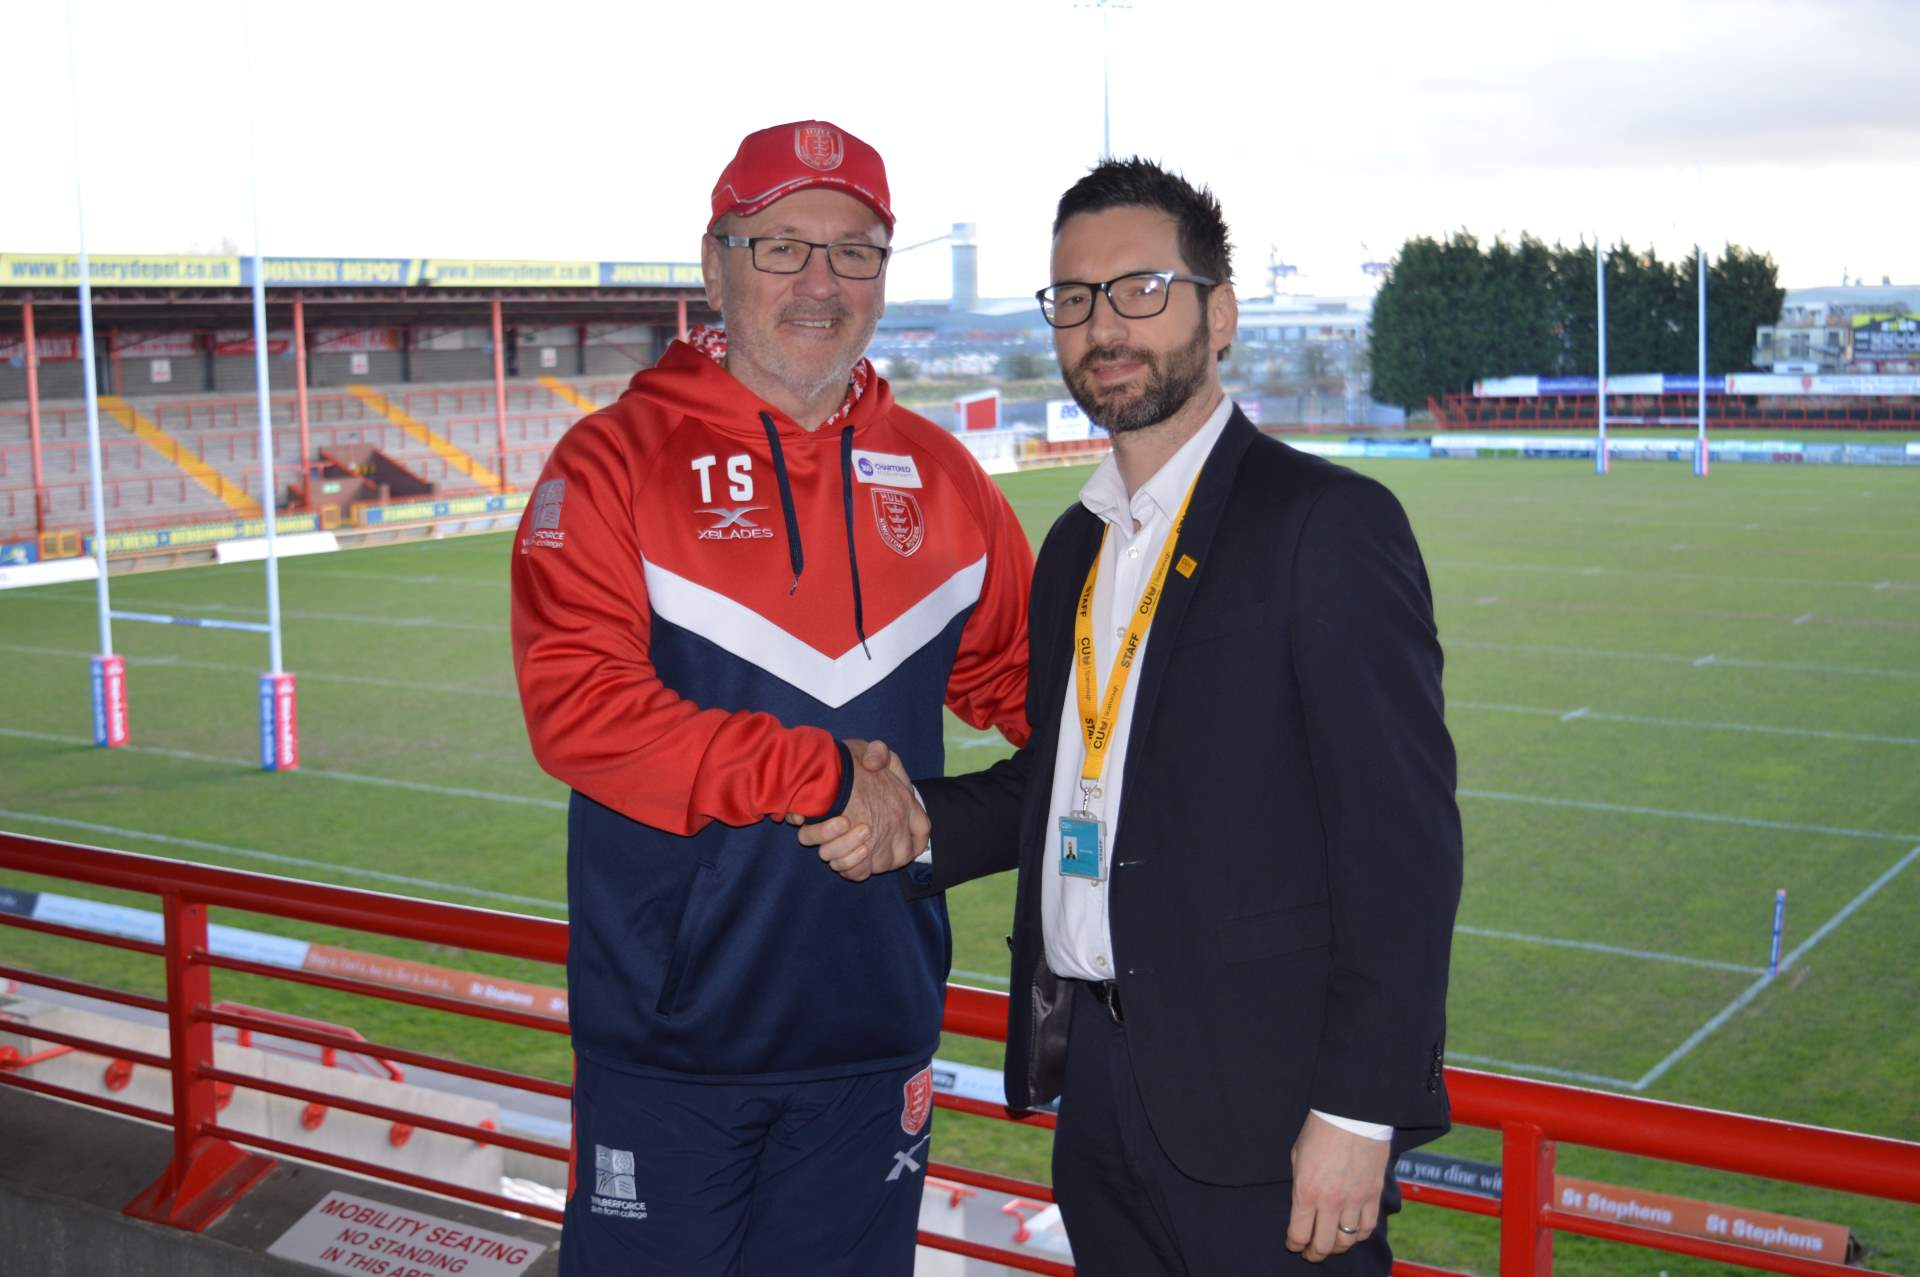 CU Scarborough sponsors Hull Kingston Rovers - signpost image